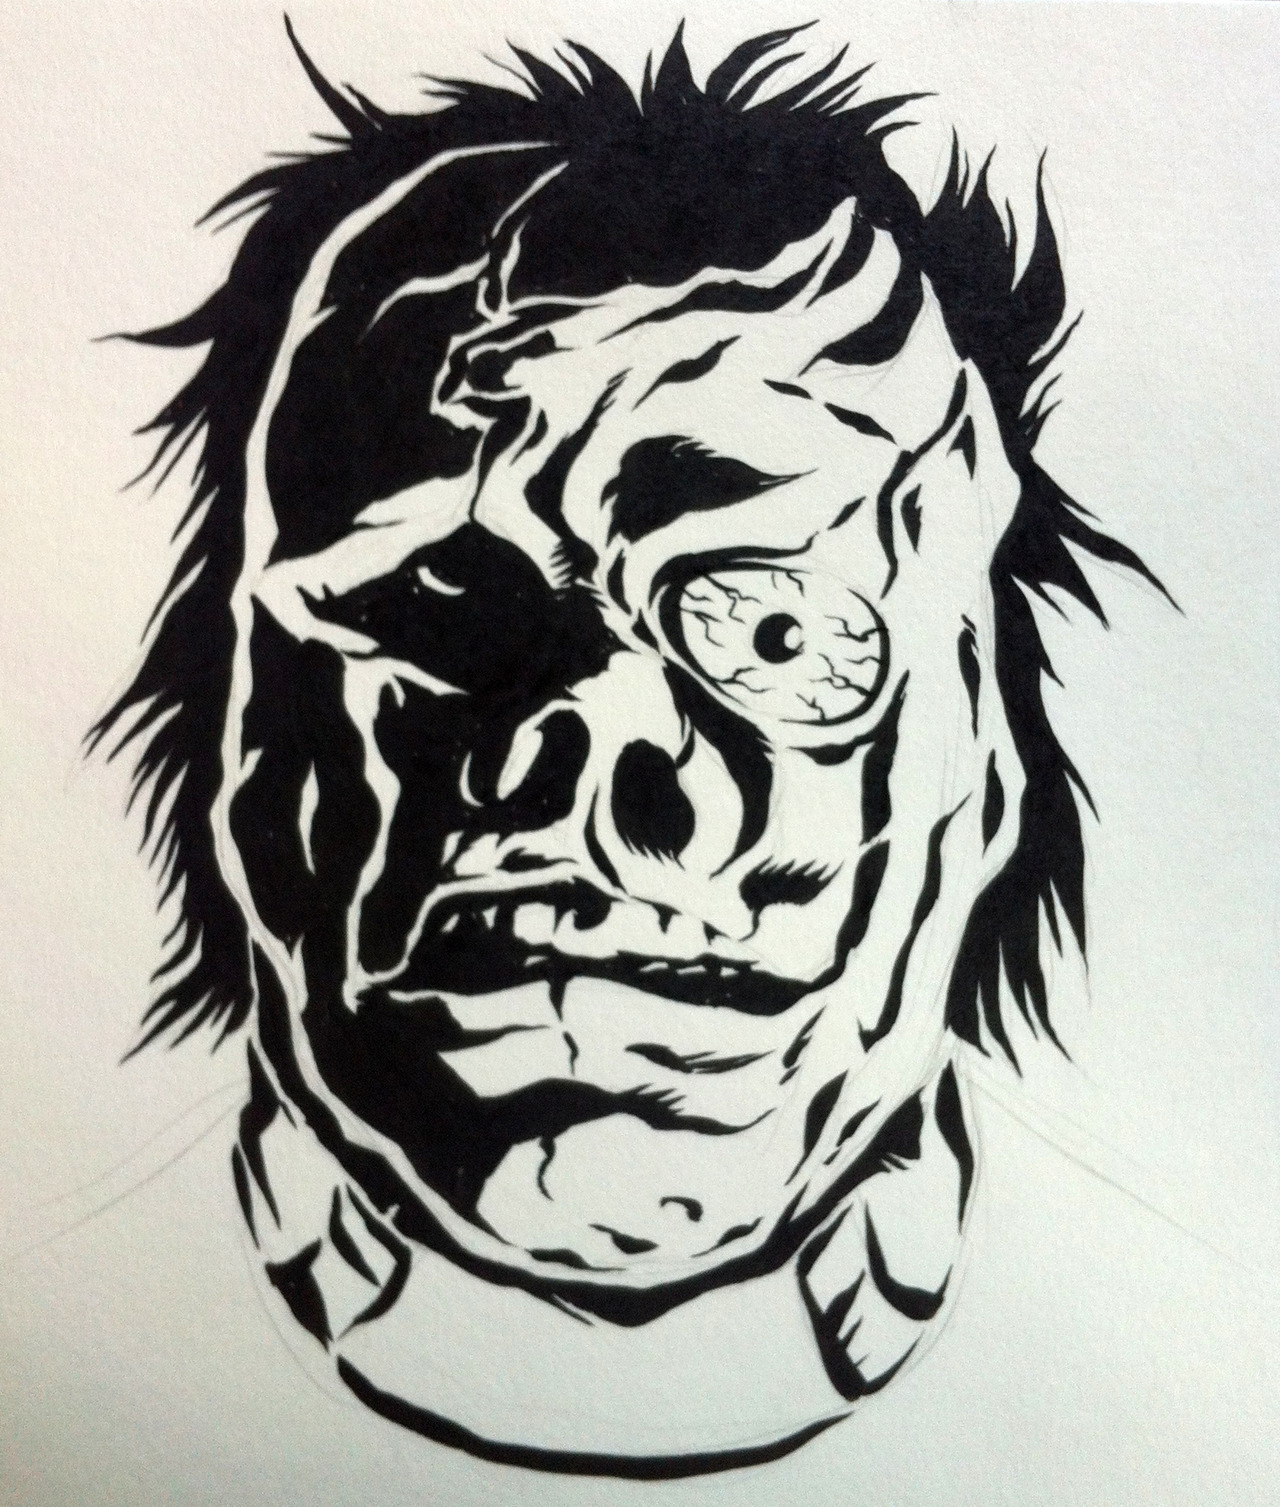 Warmup sketch: I WAS A TEENAGE FRANKENSTEIN